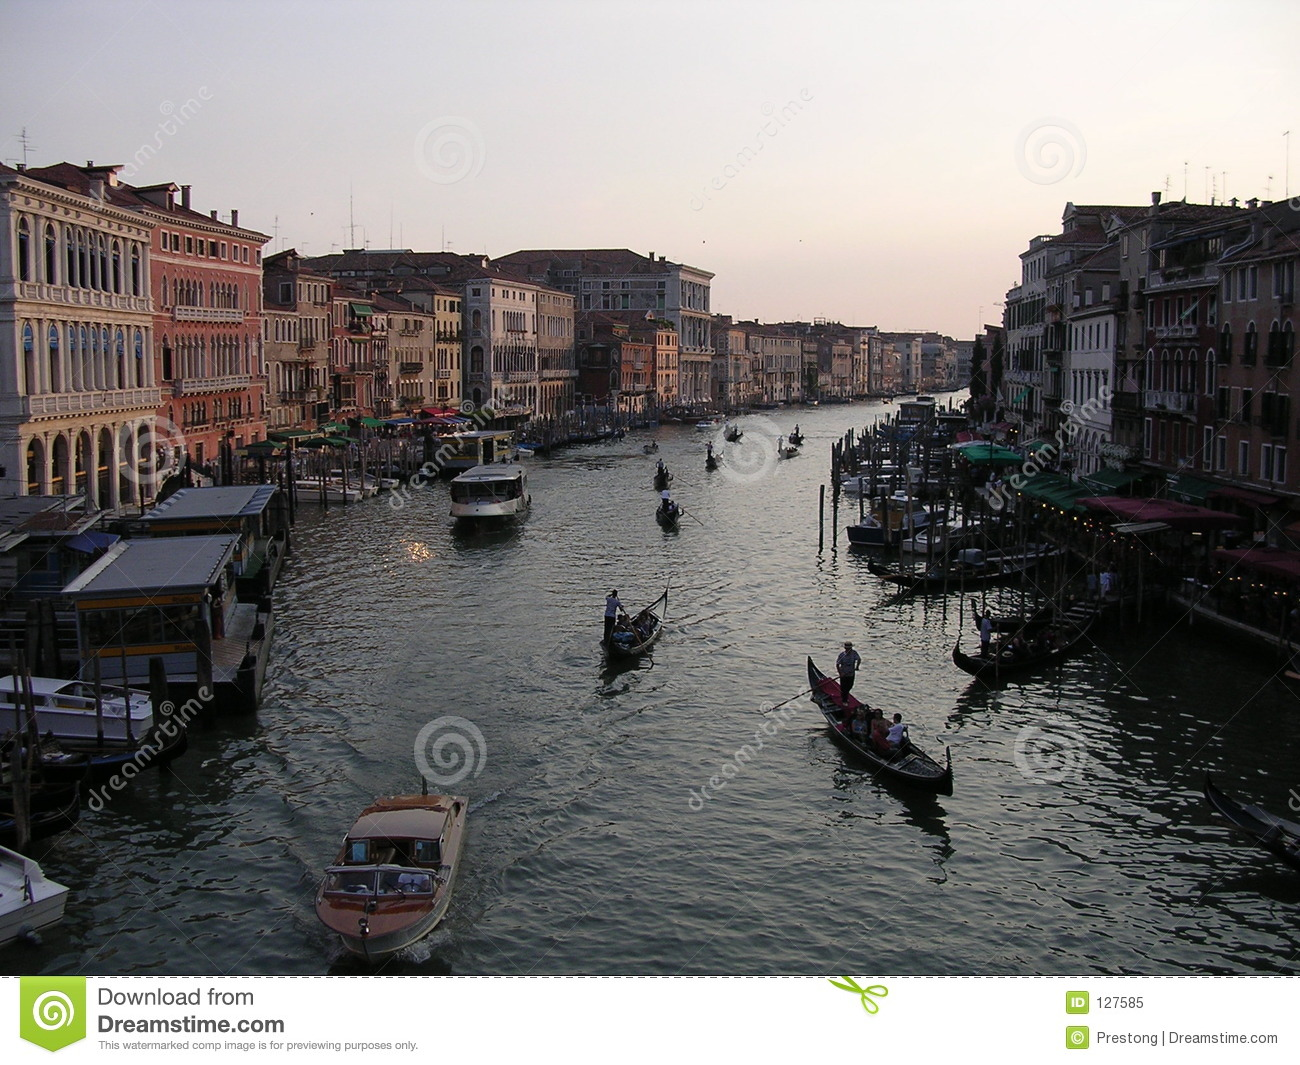 Gondolas on the Grand Canal.